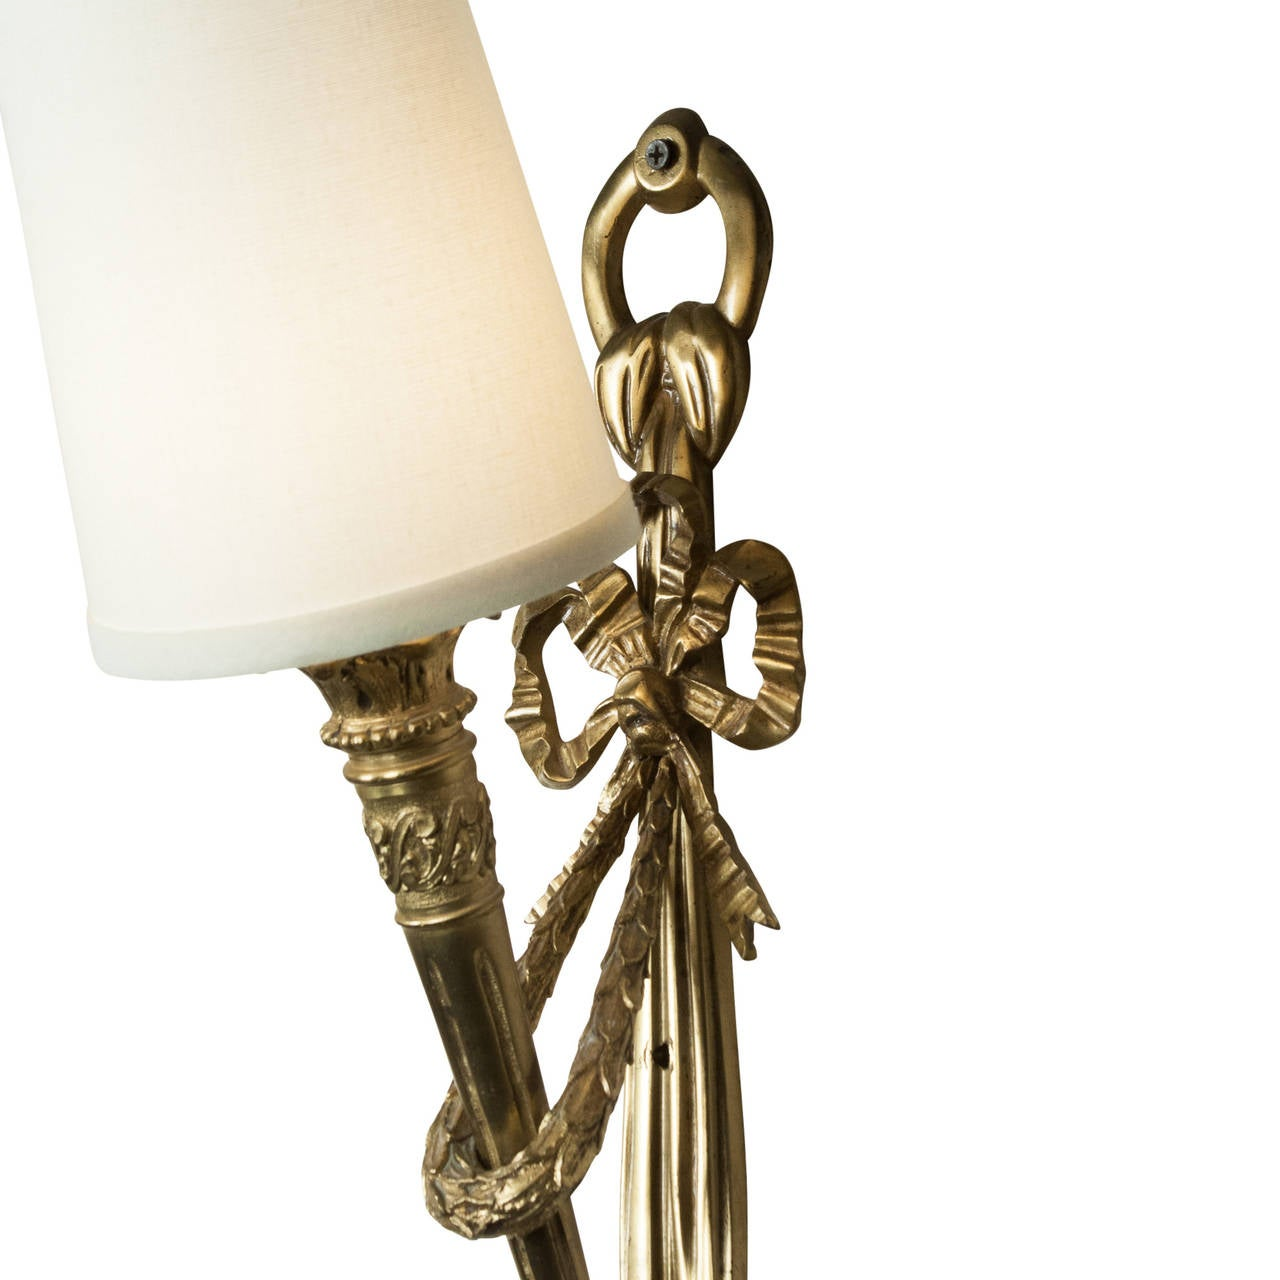 Pair of Tall Torch Wall Sconces at 1stdibs